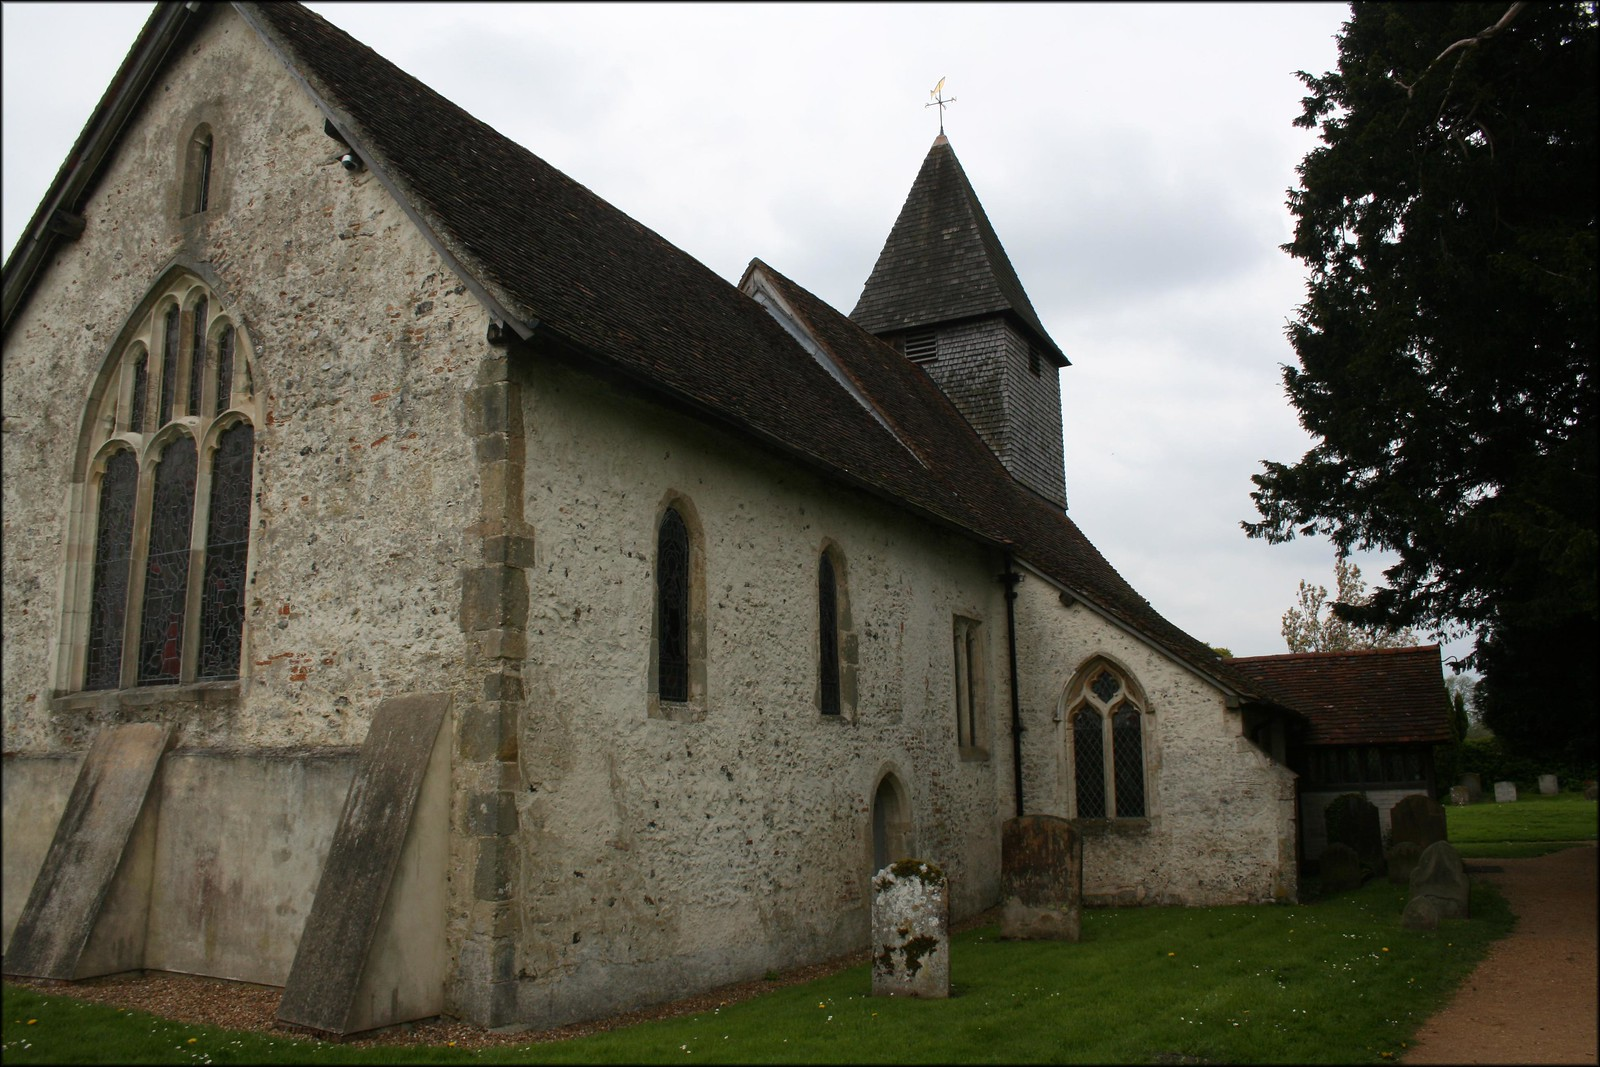 Church at Calleva Atrebatvm